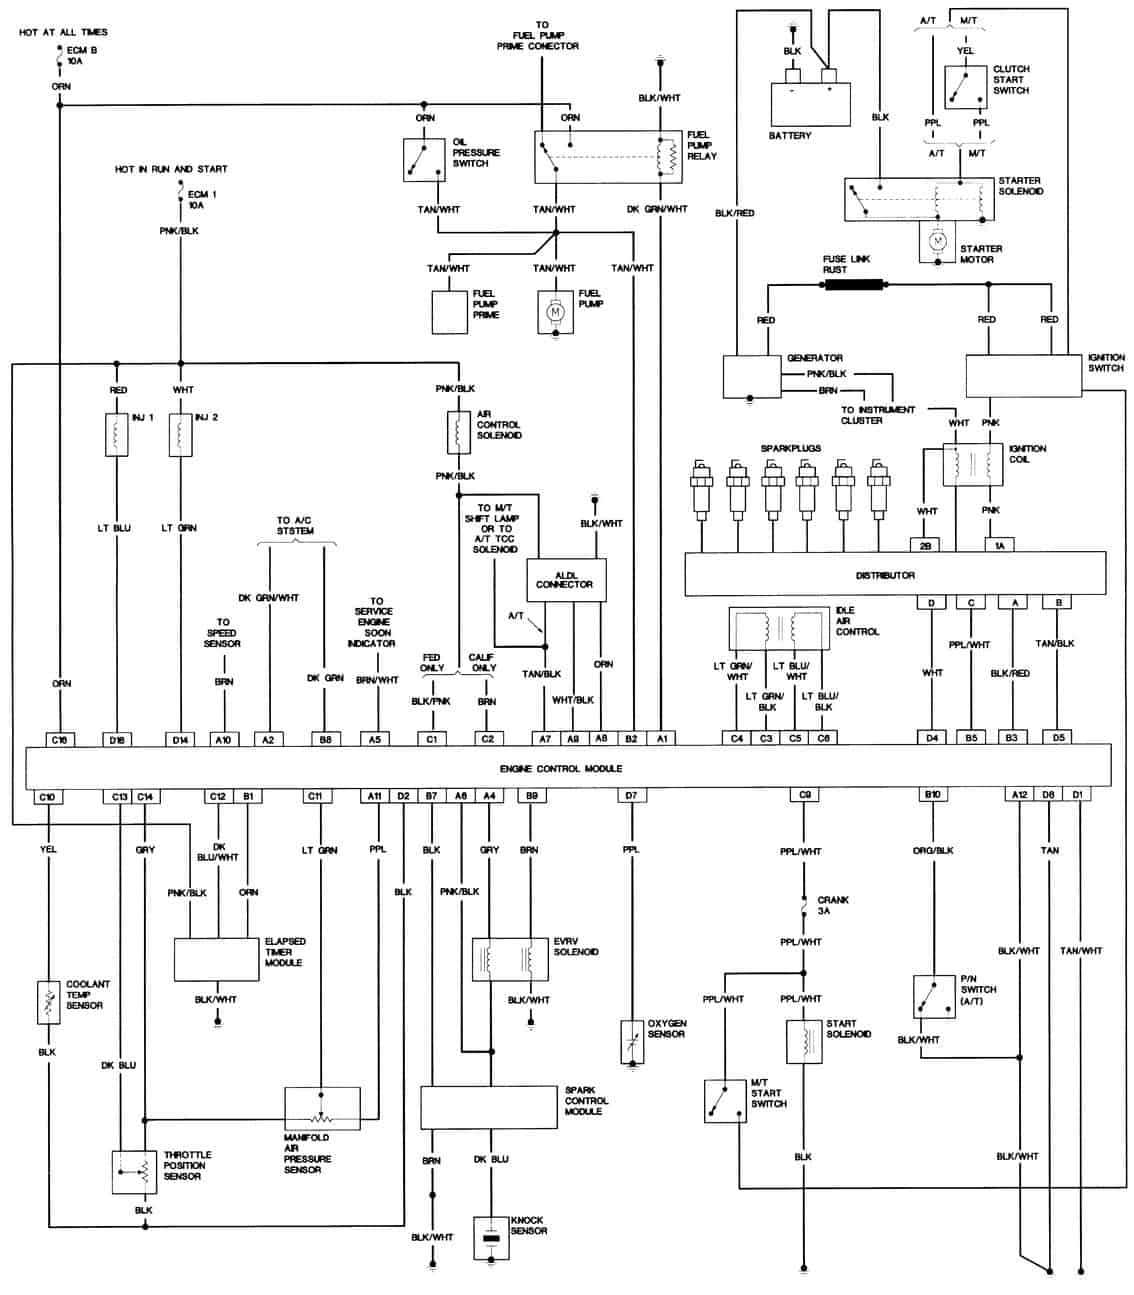 2002 chevy s10 alternator wiring diagram ford charging system 1988 free engine image for